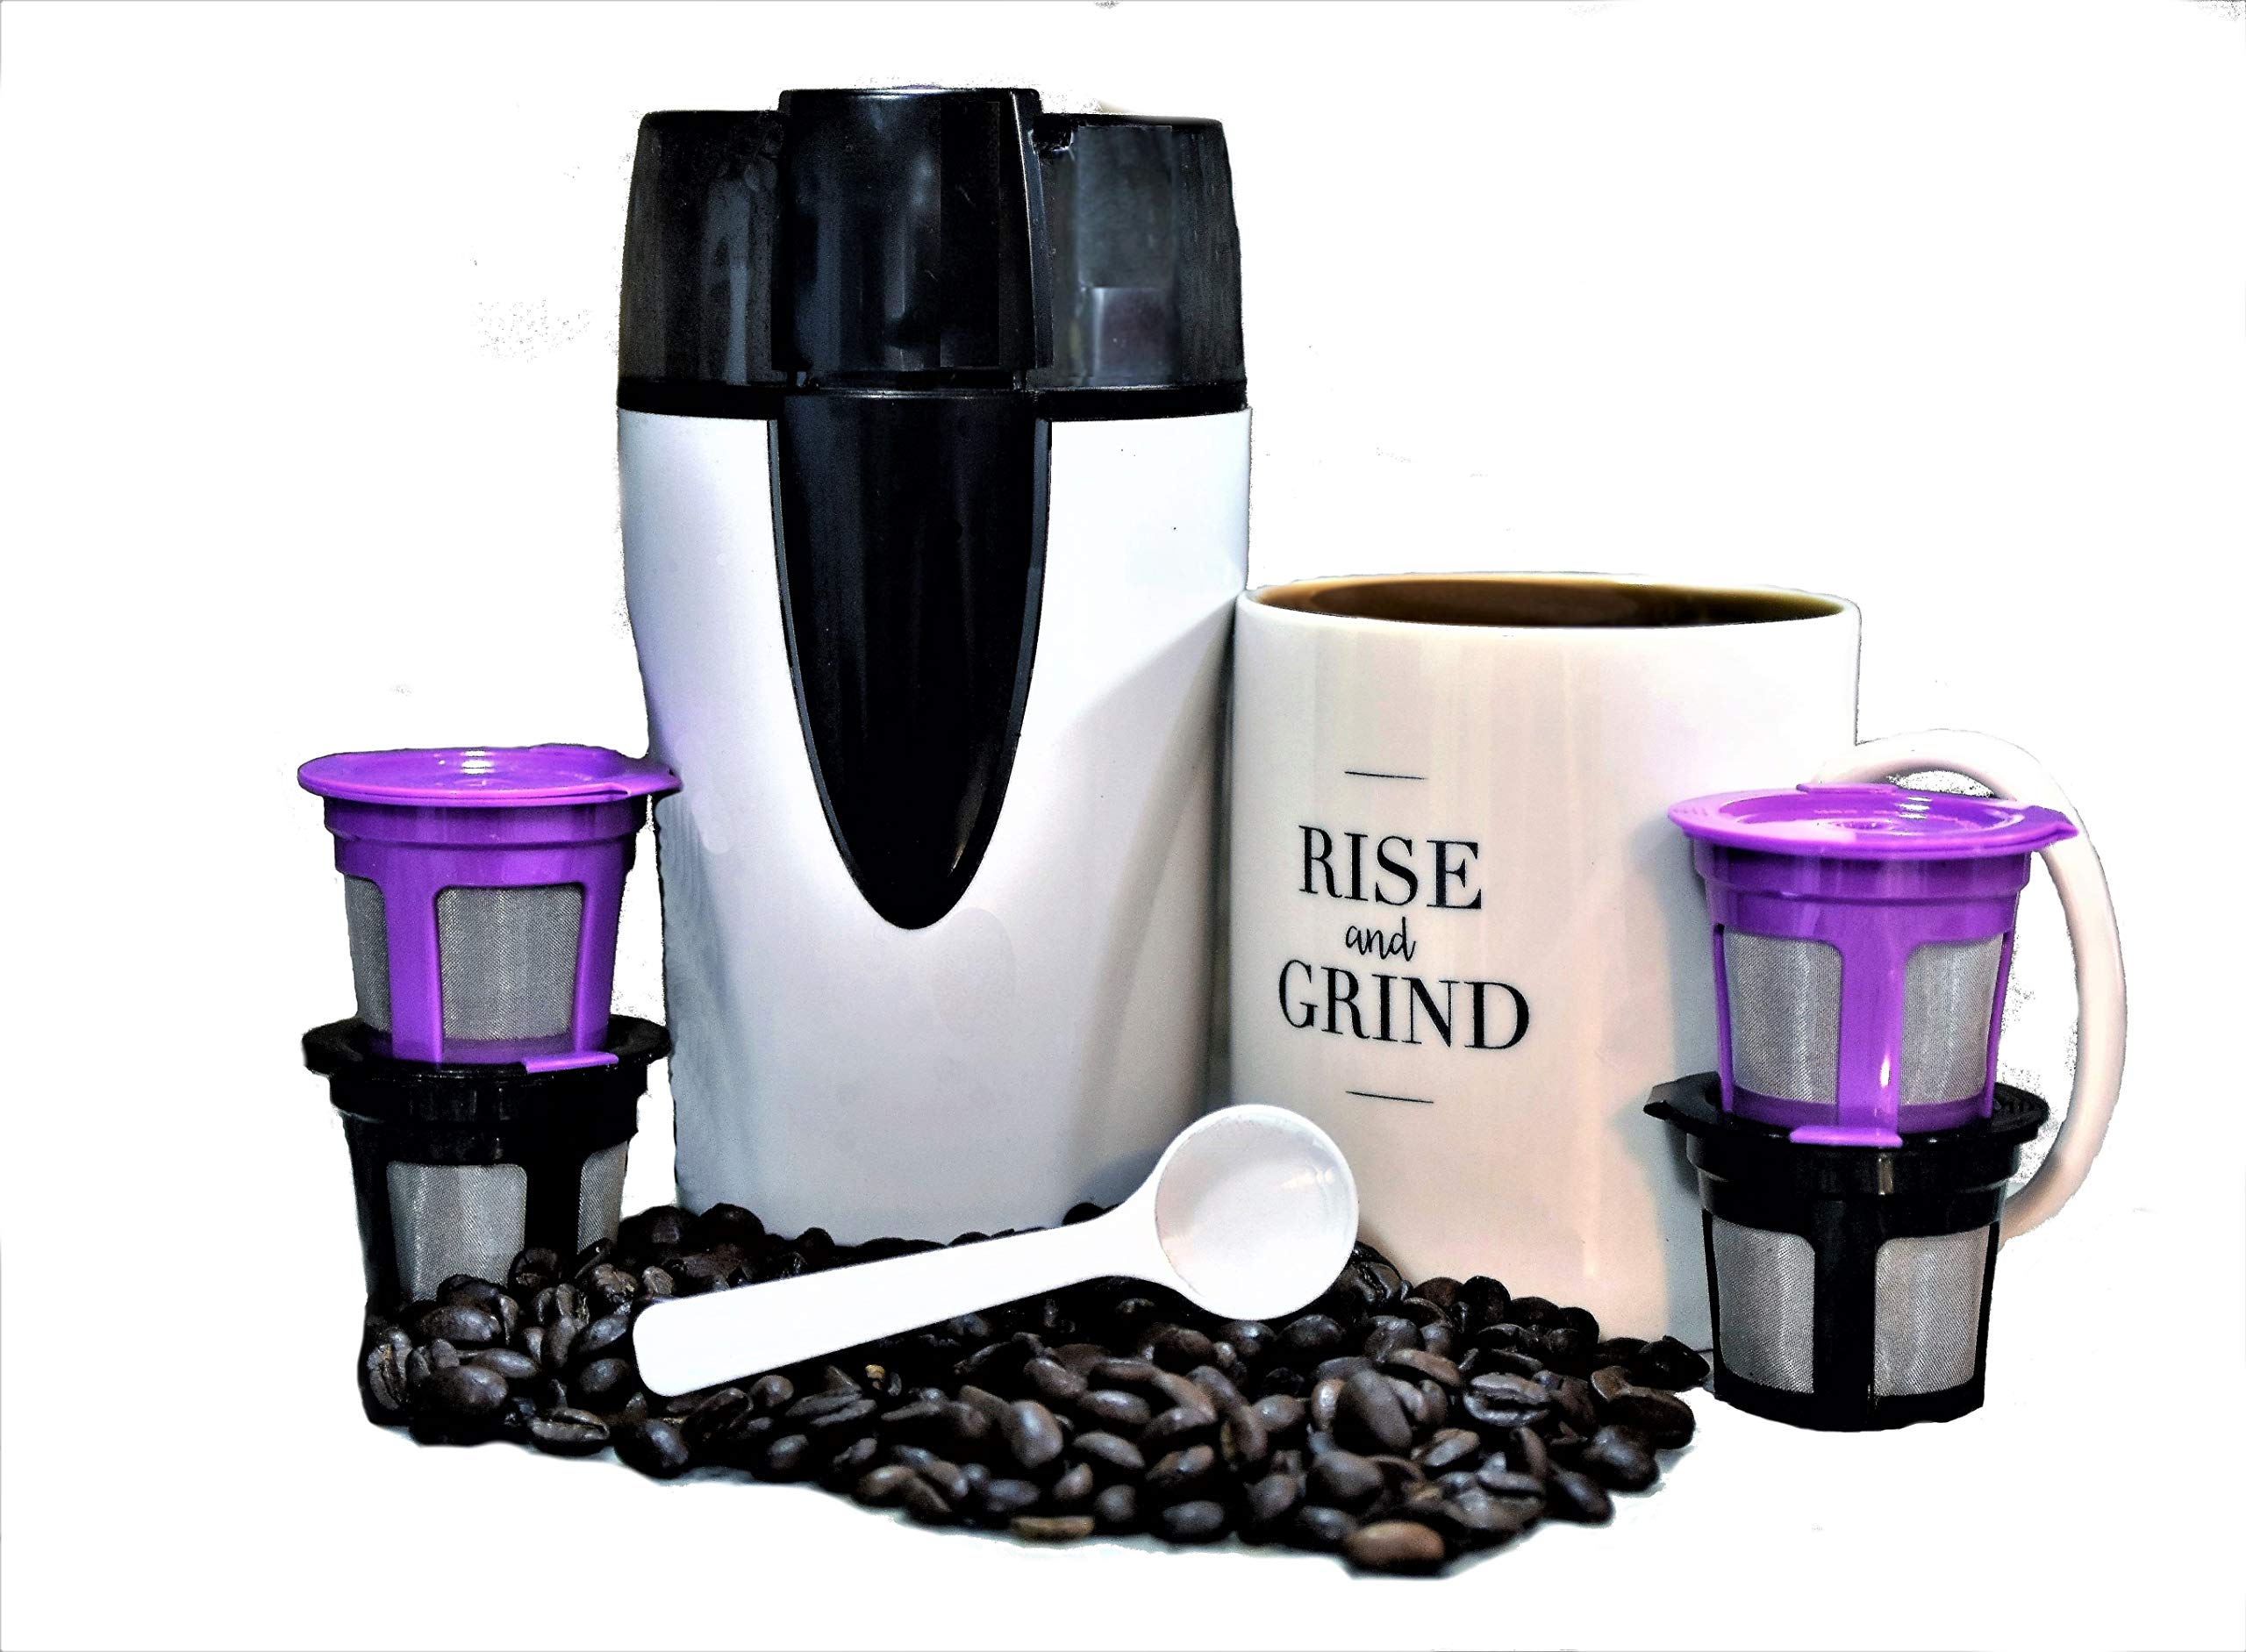 Coffee Brew Kit with Reusable/Refillable KCups and Mug | Money Saving Solution | Universal Compatibility with 1.0 & 2.0 Keurig Machines | Save the Earth | Drink Tastier Coffee by Coffee Domain